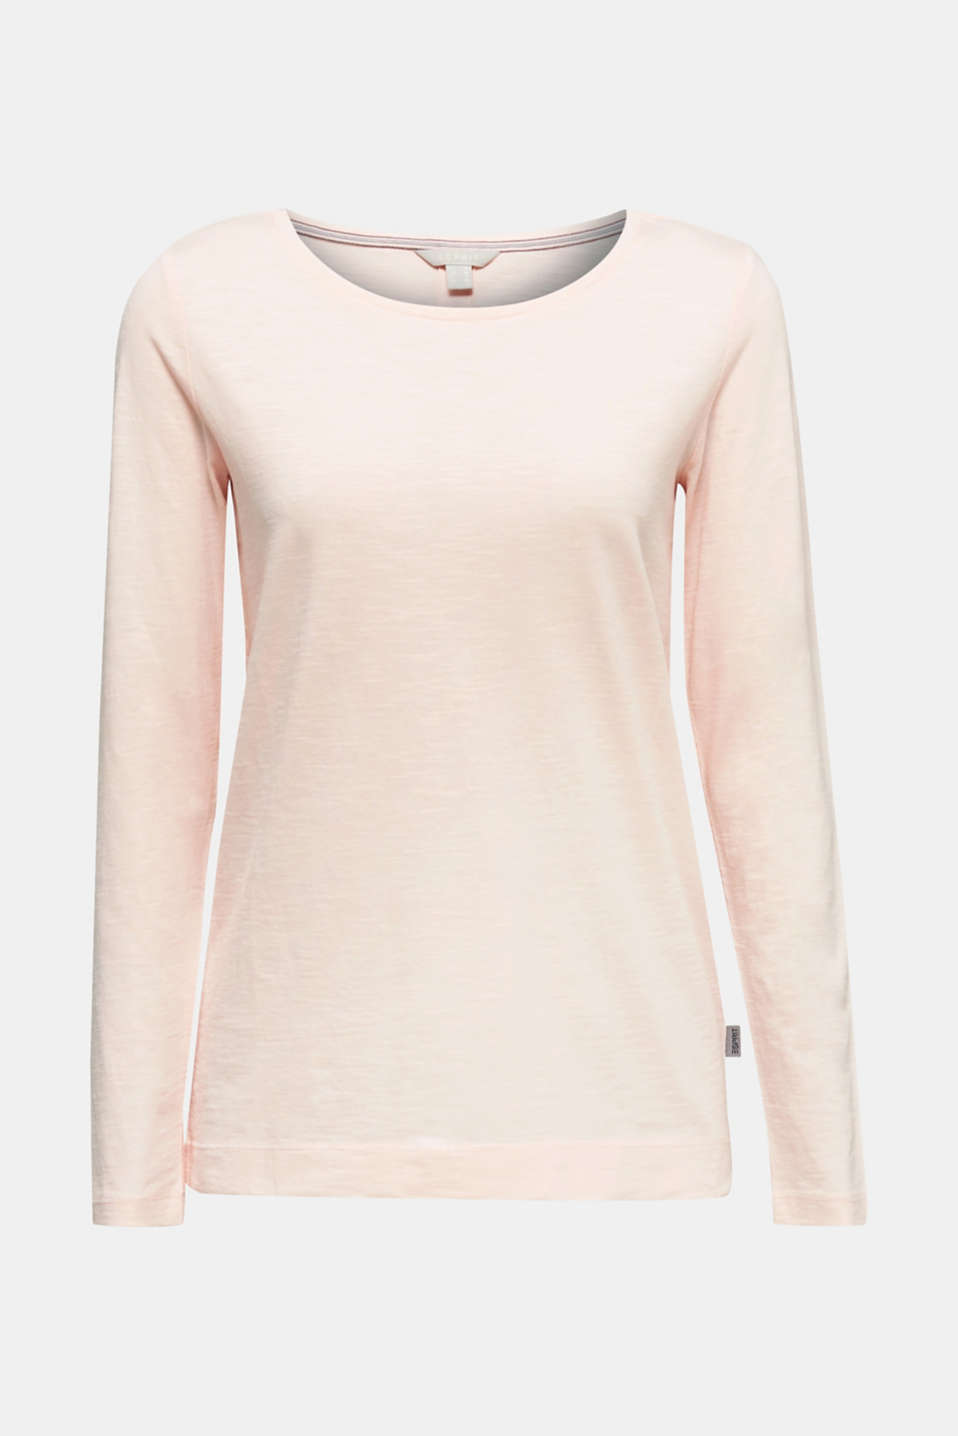 Long sleeve slub top with a pintuck, 100% cotton, SALMON, detail image number 4